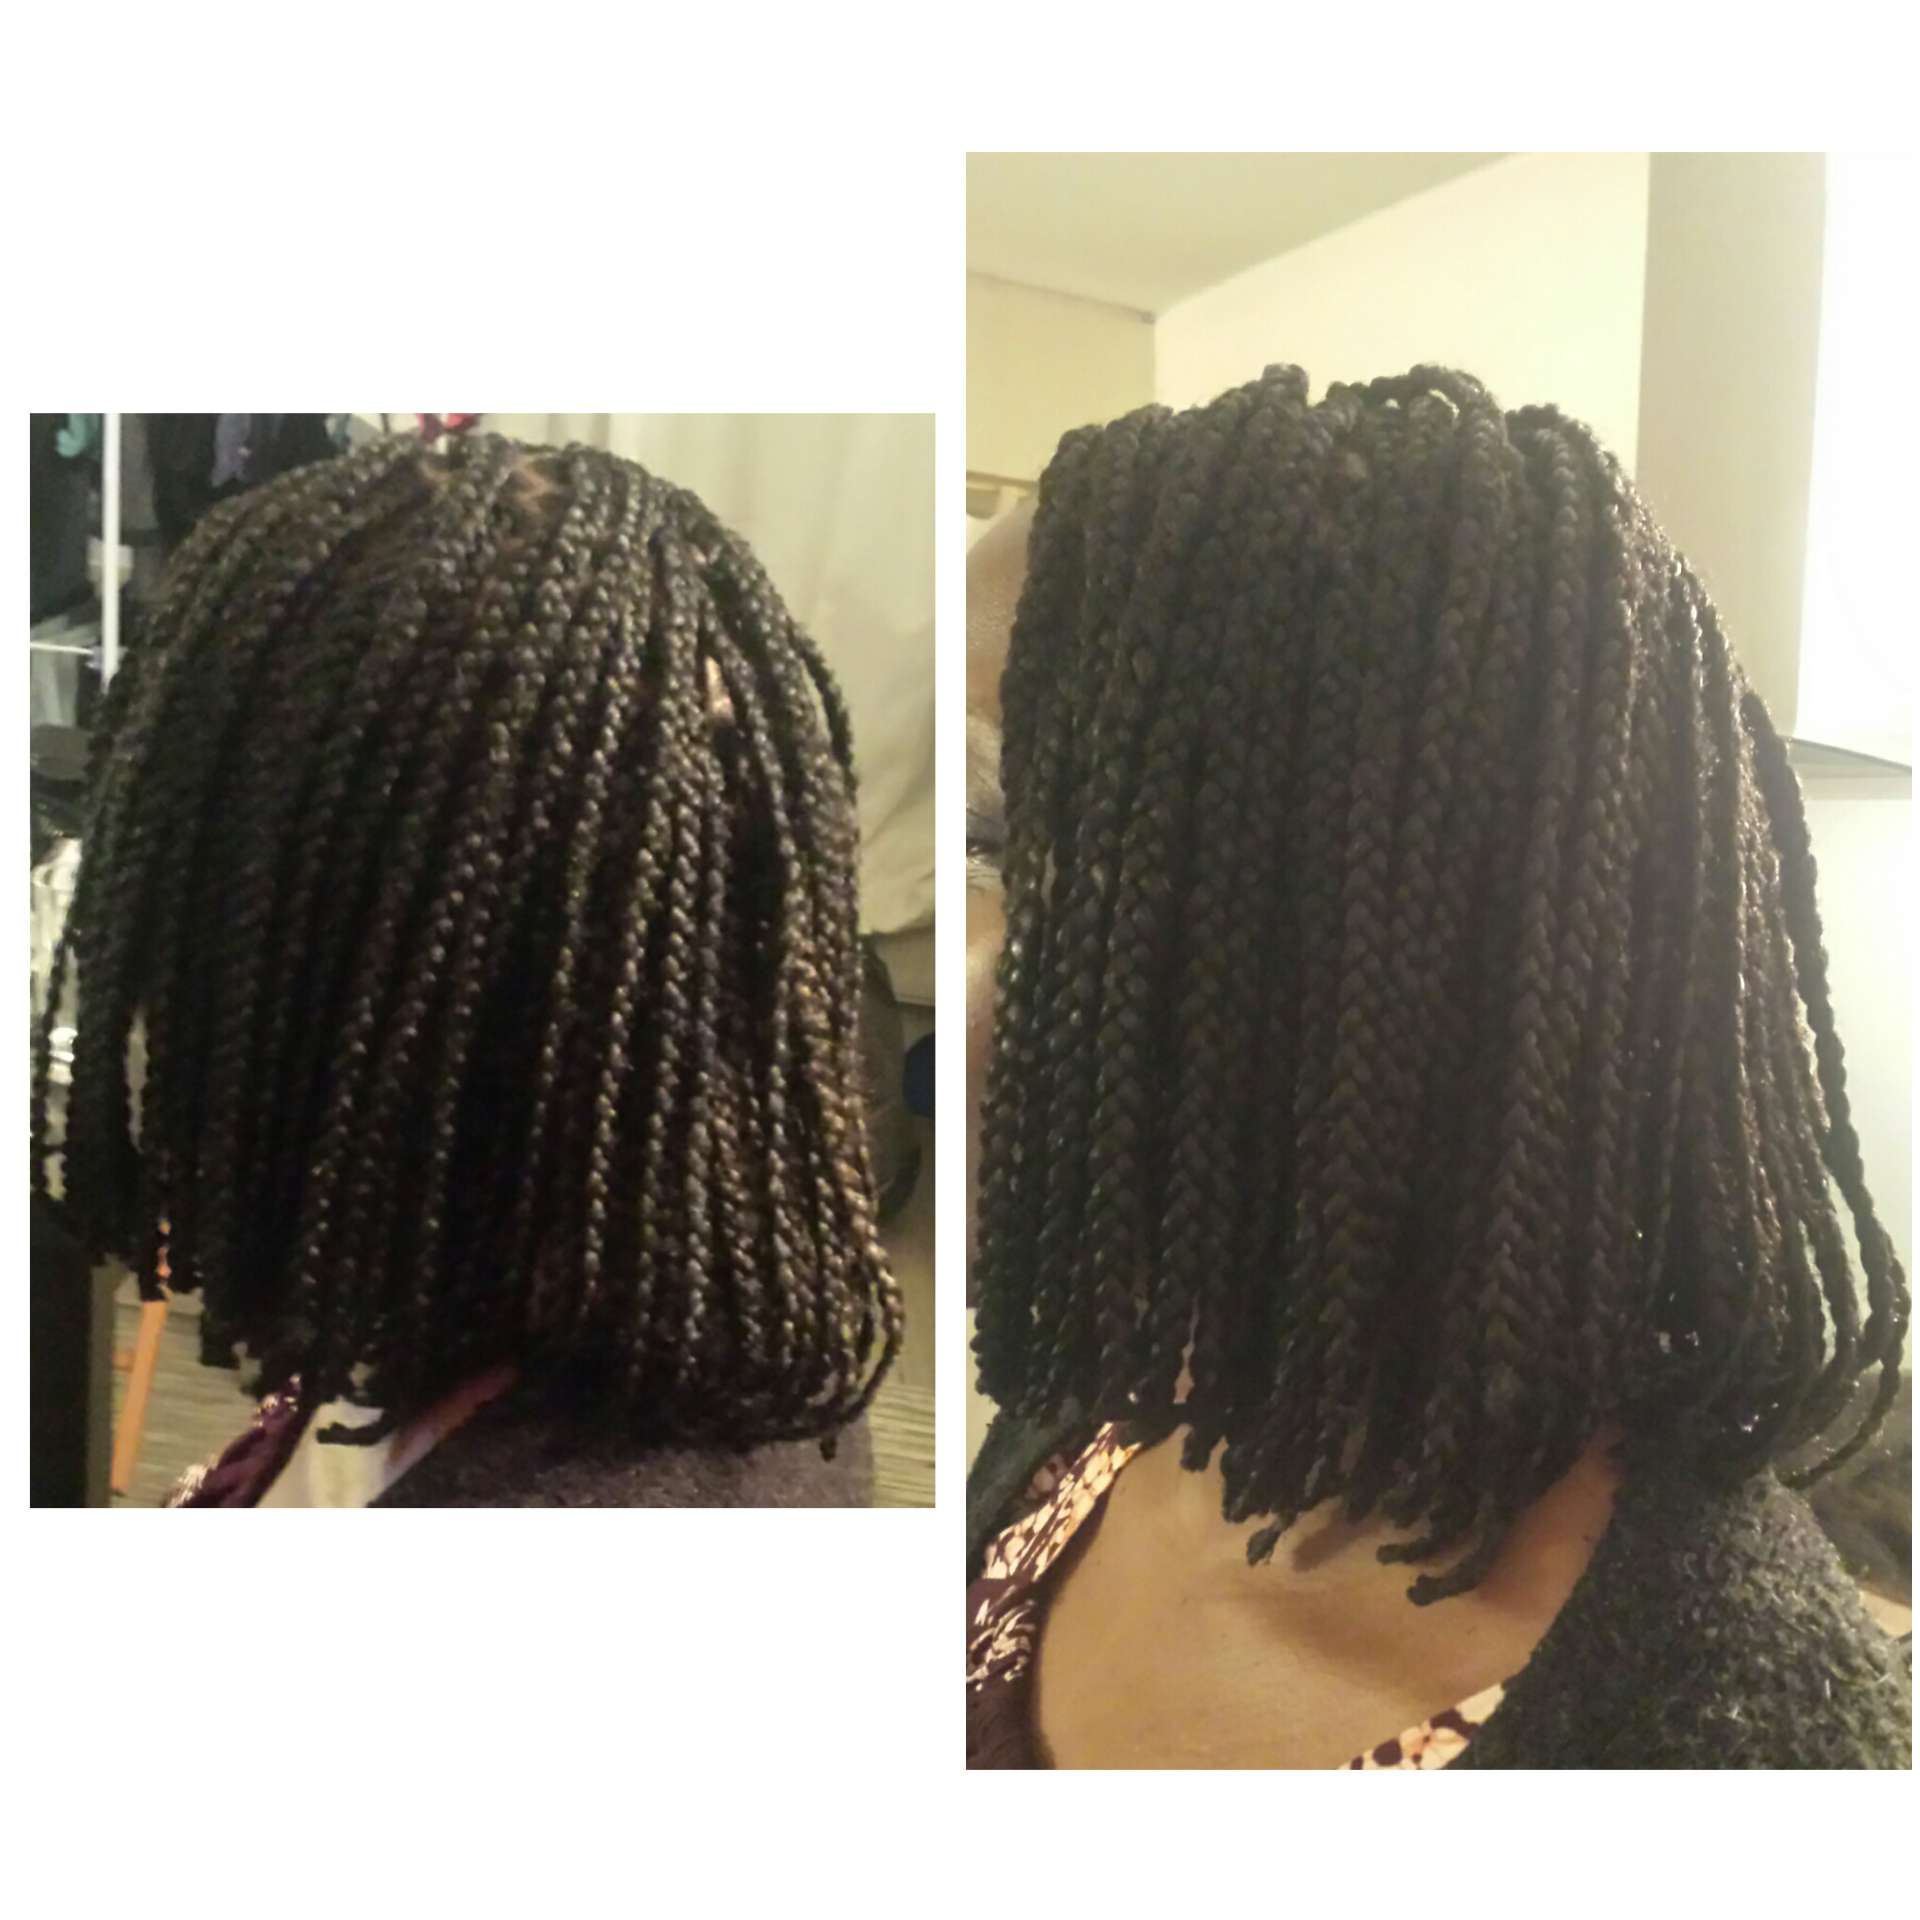 salon de coiffure afro tresse tresses box braids crochet braids vanilles tissages paris 75 77 78 91 92 93 94 95 ZLUATHAB